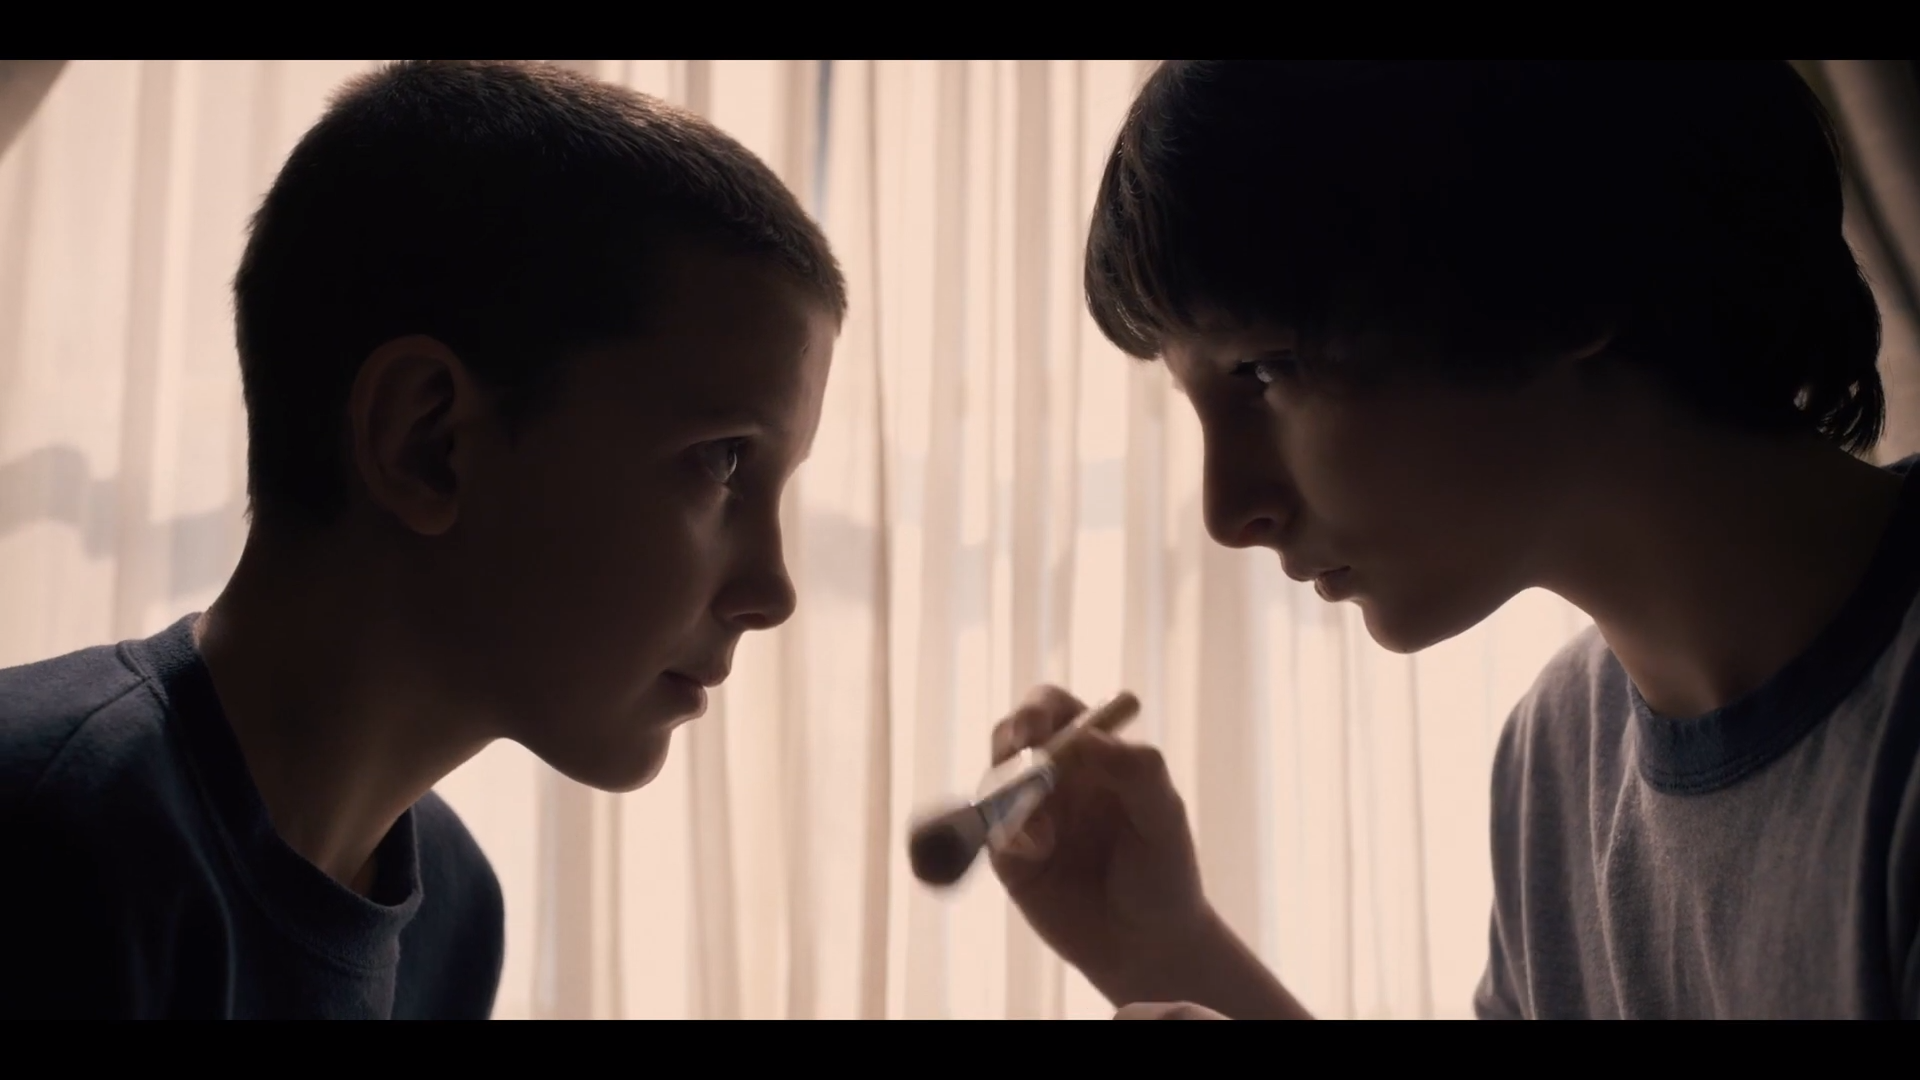 Best Mileven Moments. Eleven & Mike's Cutest Scenes from the Entire Series - Stranger Things #scenesfrommovies